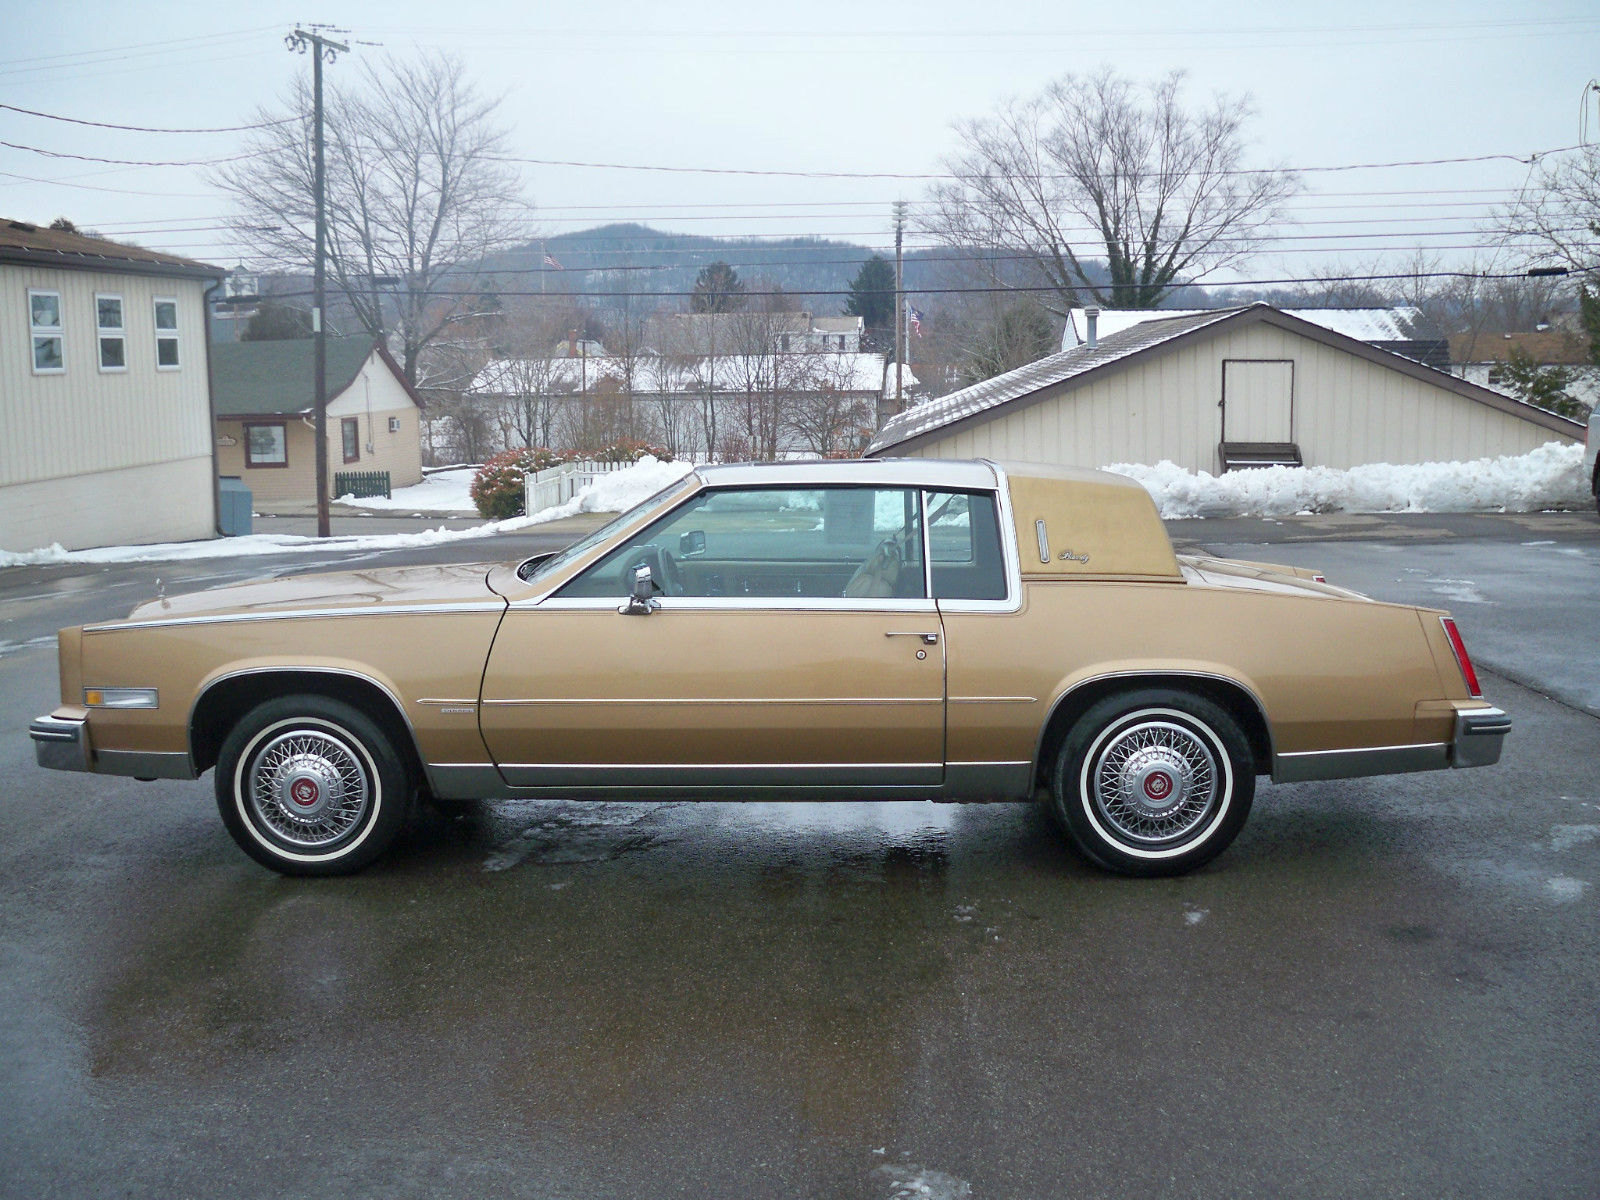 1981 cadillac eldorado biarritz coupe 2 door 5 7l for sale in harmony pennsylvania united states for sale photos technical specifications description classiccardb com